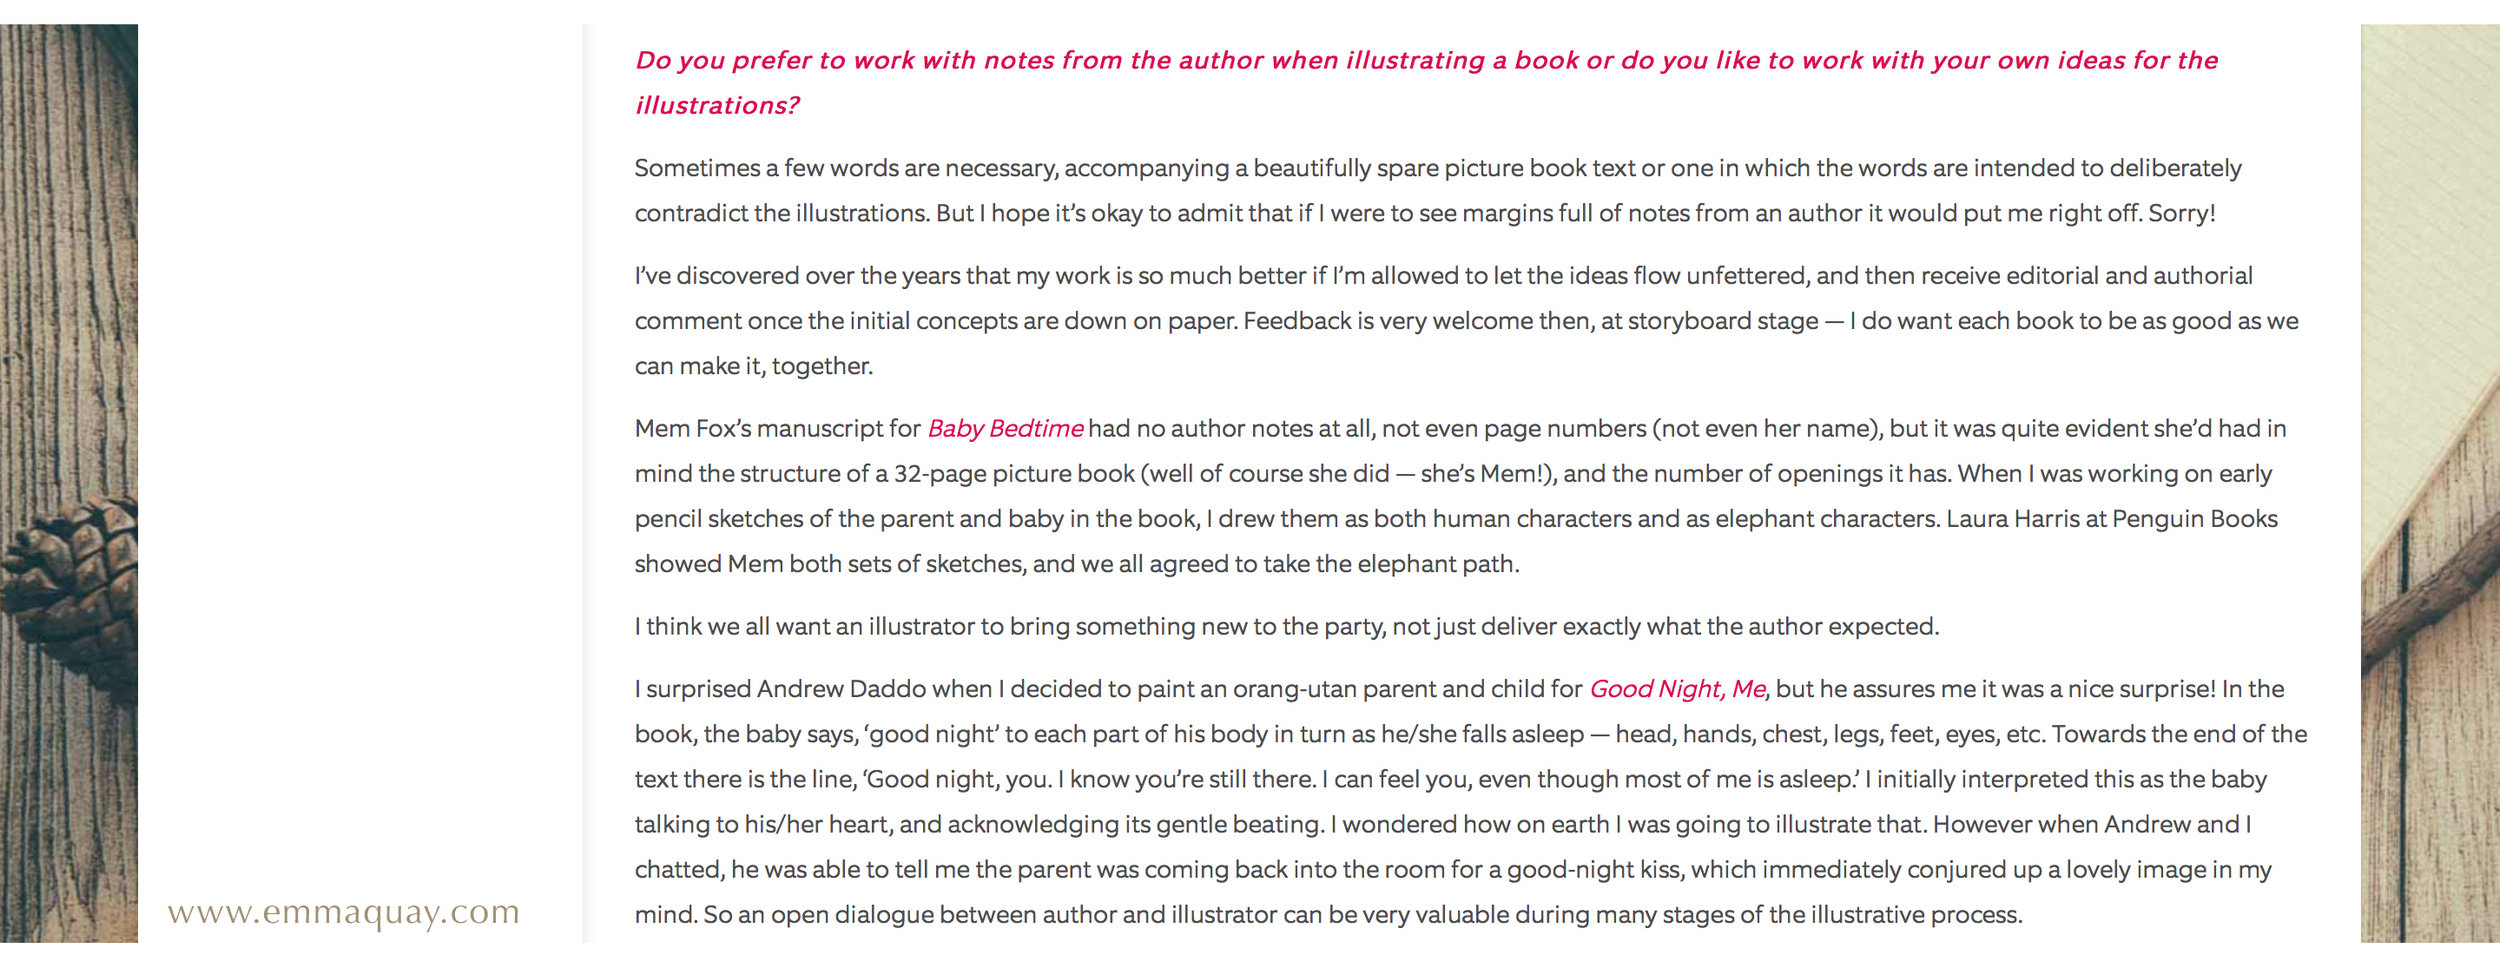 You can find more of my thoughts on illustration notes in this  interview  with  Creative Kids Tales , speaking about my experiences as an illustrator of texts by picture book authors Mem Fox and Andrew Daddo. ( Interviews can be found on my ABOUT page .)